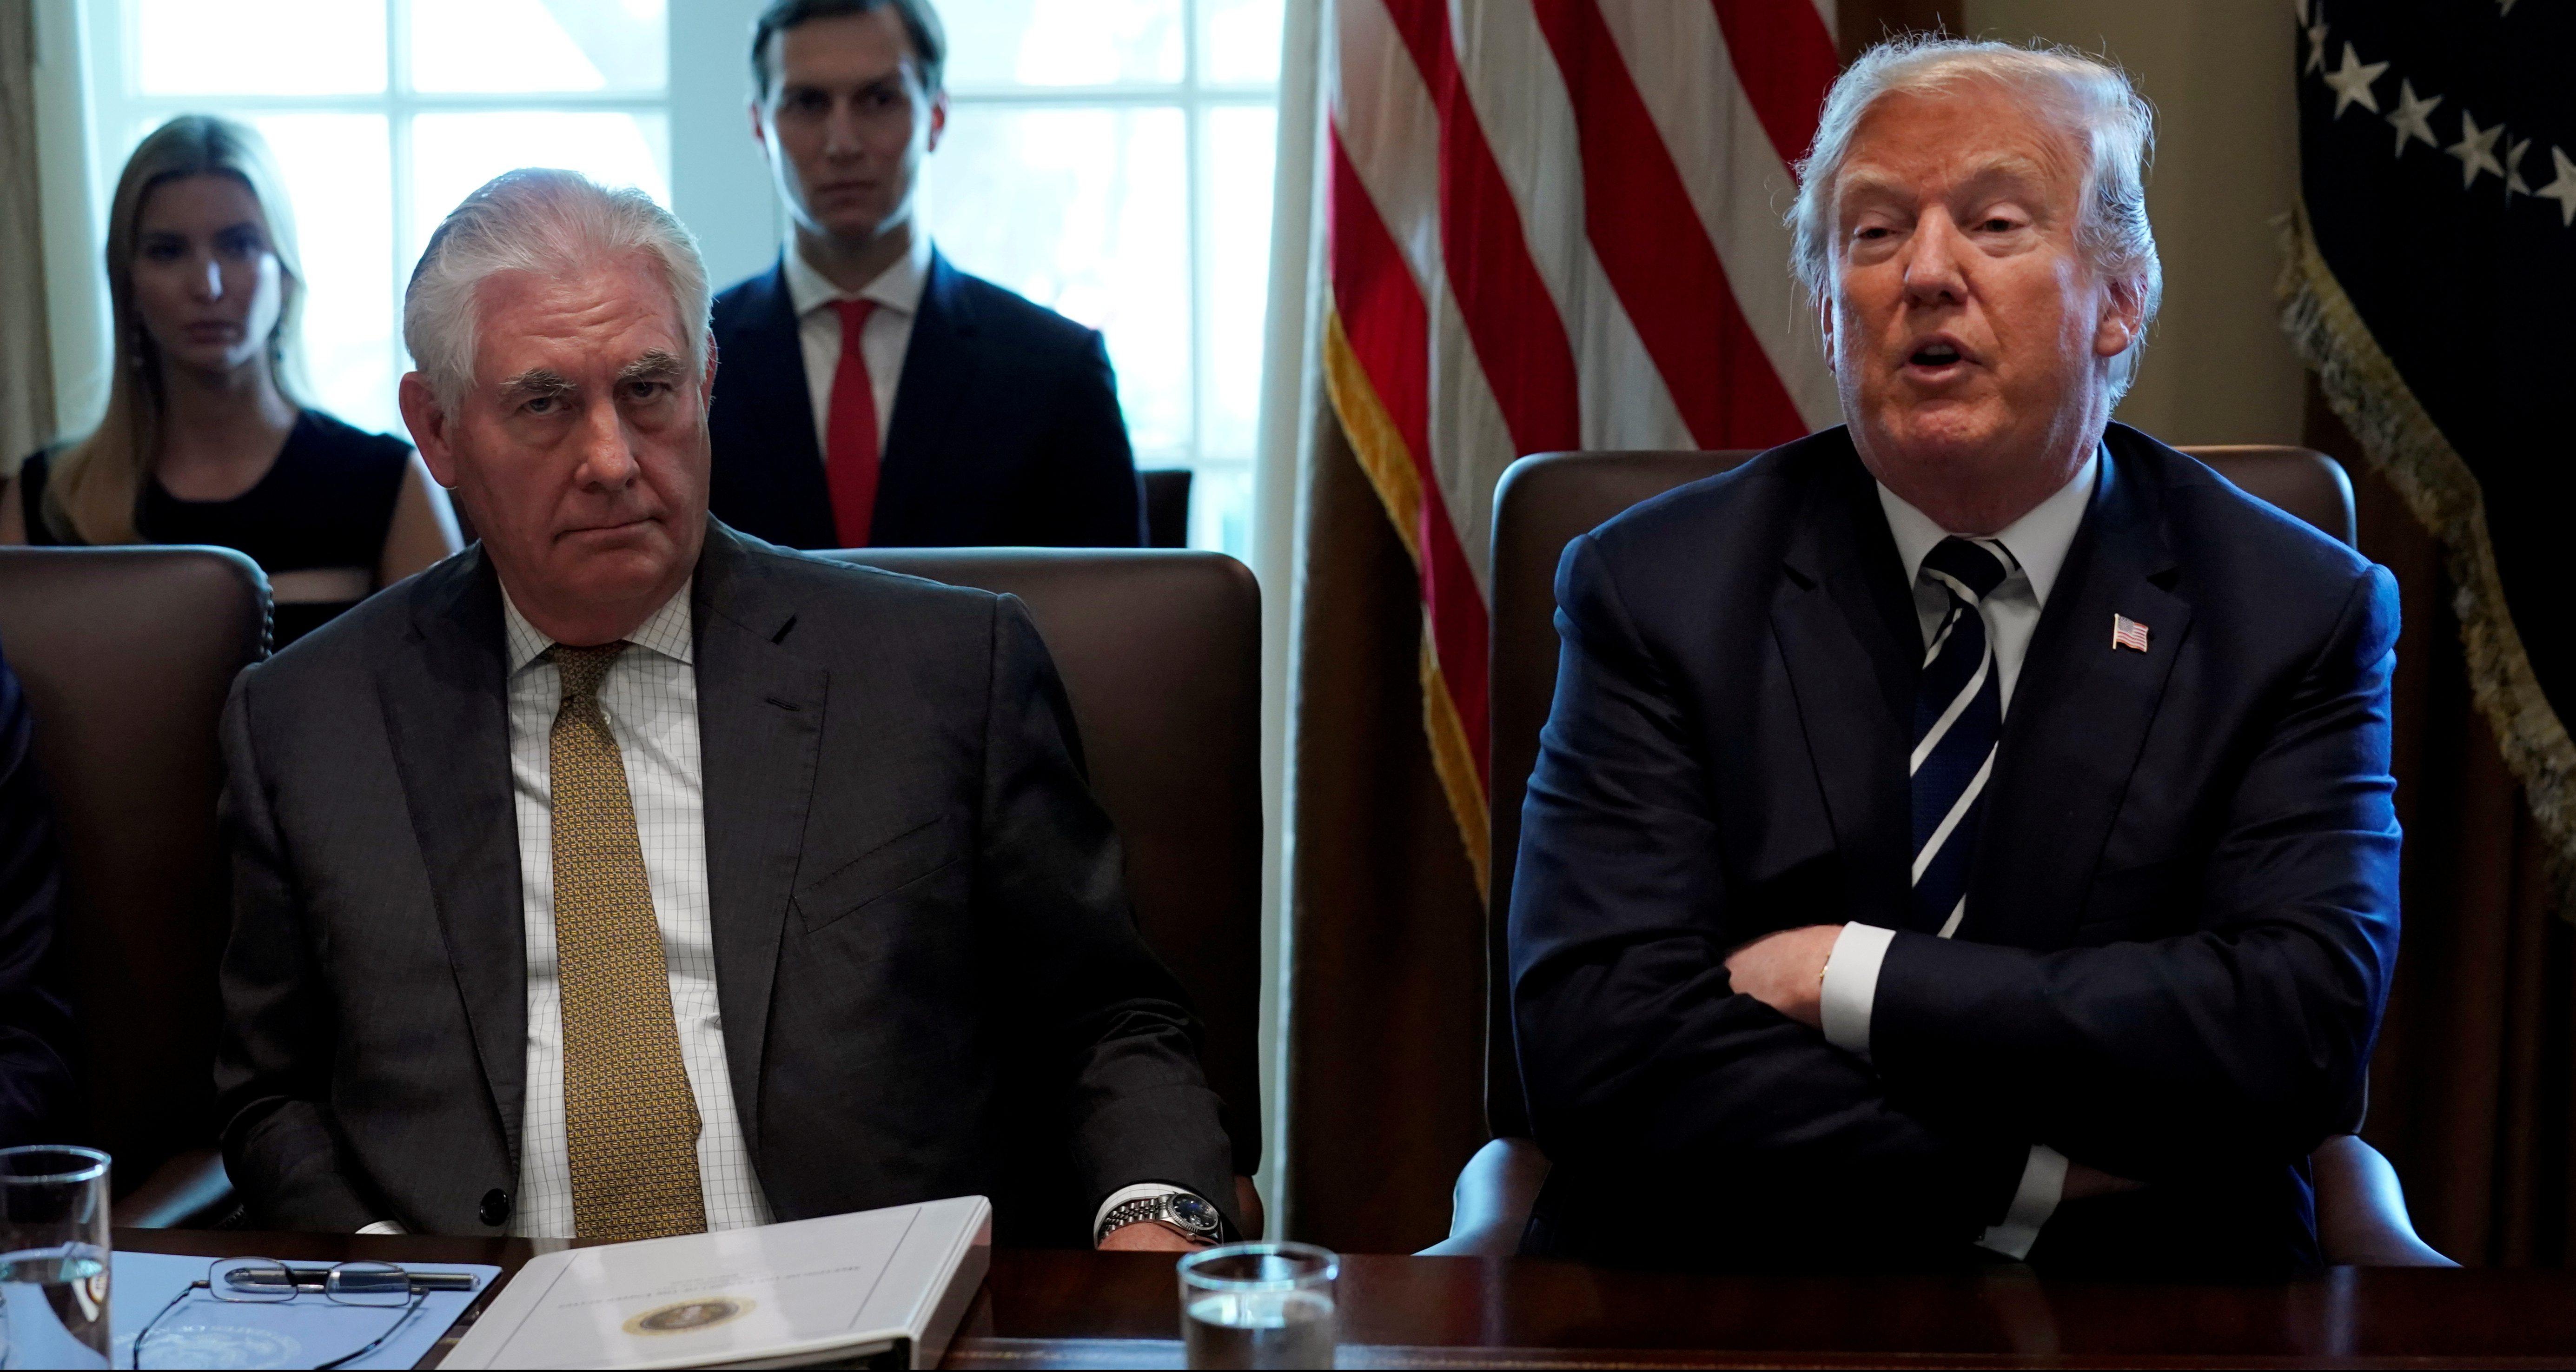 U.S. Secretary of State Rex Tillerson listens as President Donald Trump holds a cabinet meeting at the White House in Washington, U.S., October 16, 2017.